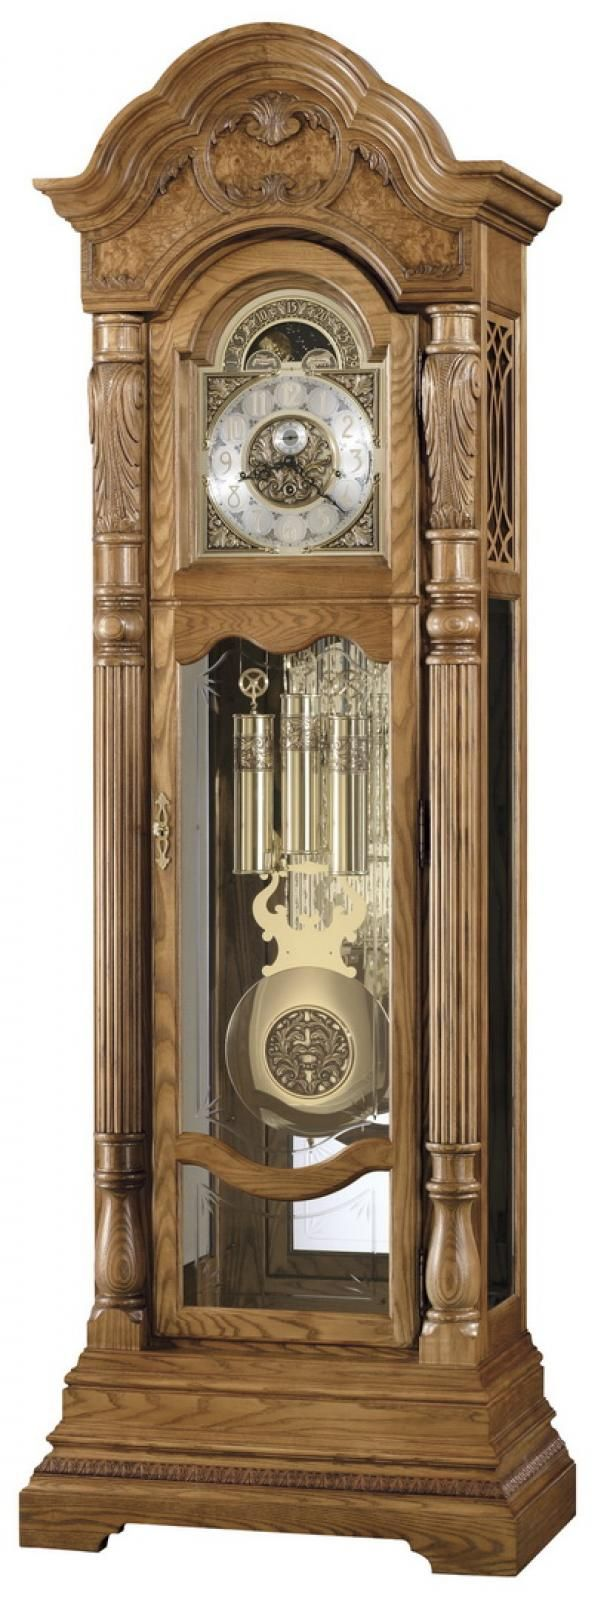 59 best clocks images on pinterest wall clocks outdoor clock found it at clockway howard miller nicolette triple chiming presidential grandfather clock amipublicfo Images